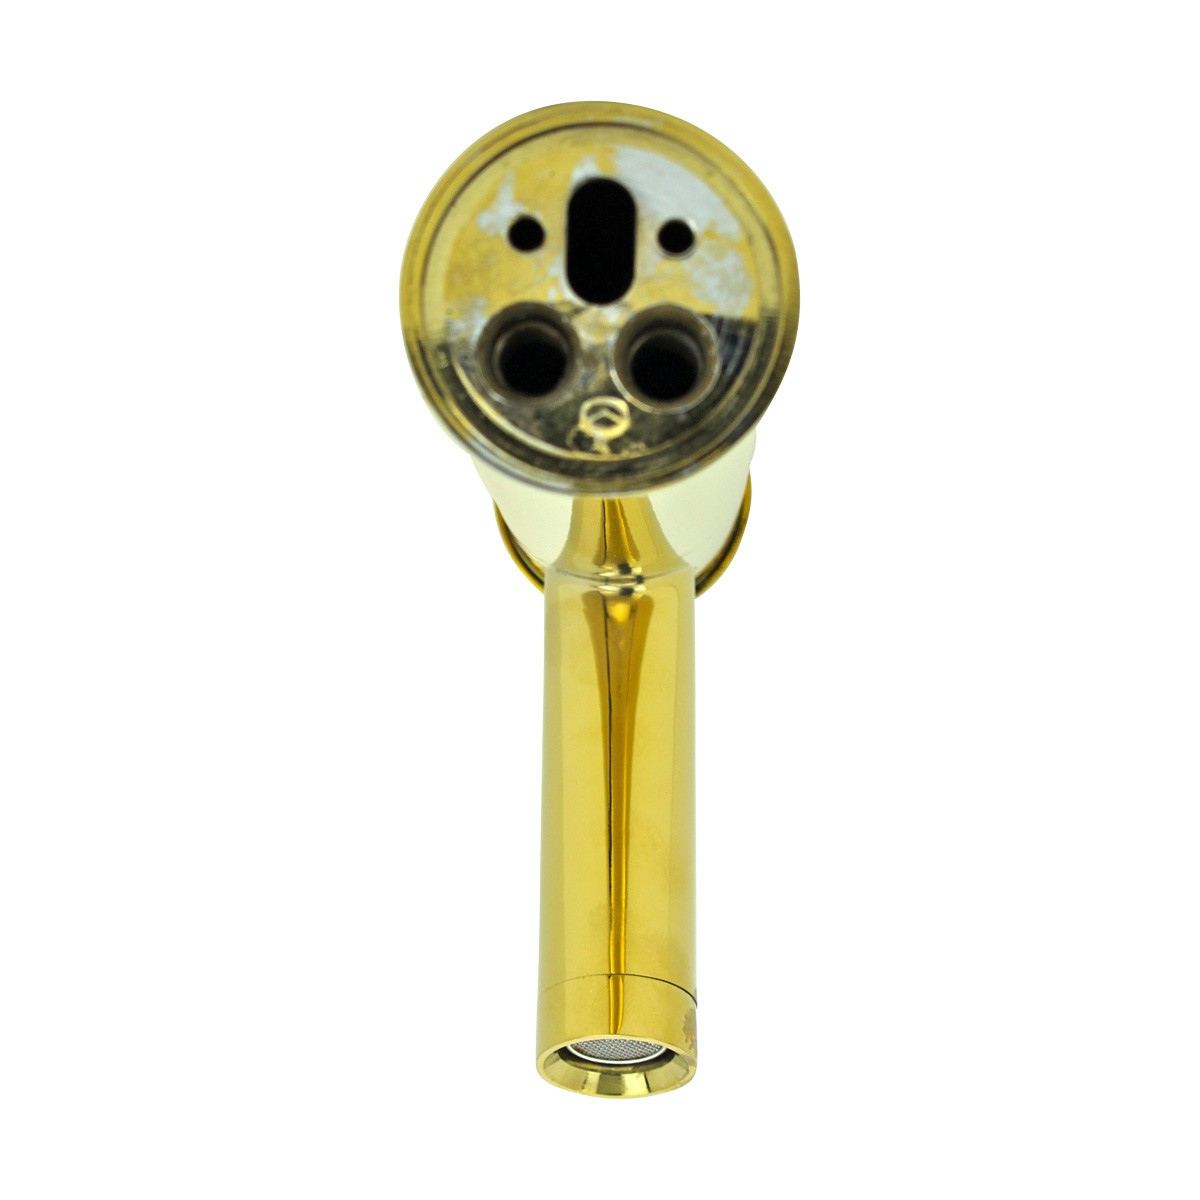 Bathroom Faucet Gold PVD Brass Round Single Hole 1 Handle Gold Pvd Bathroom Faucet Brass Bathroom Faucets Bathroom Faucet Single Handle